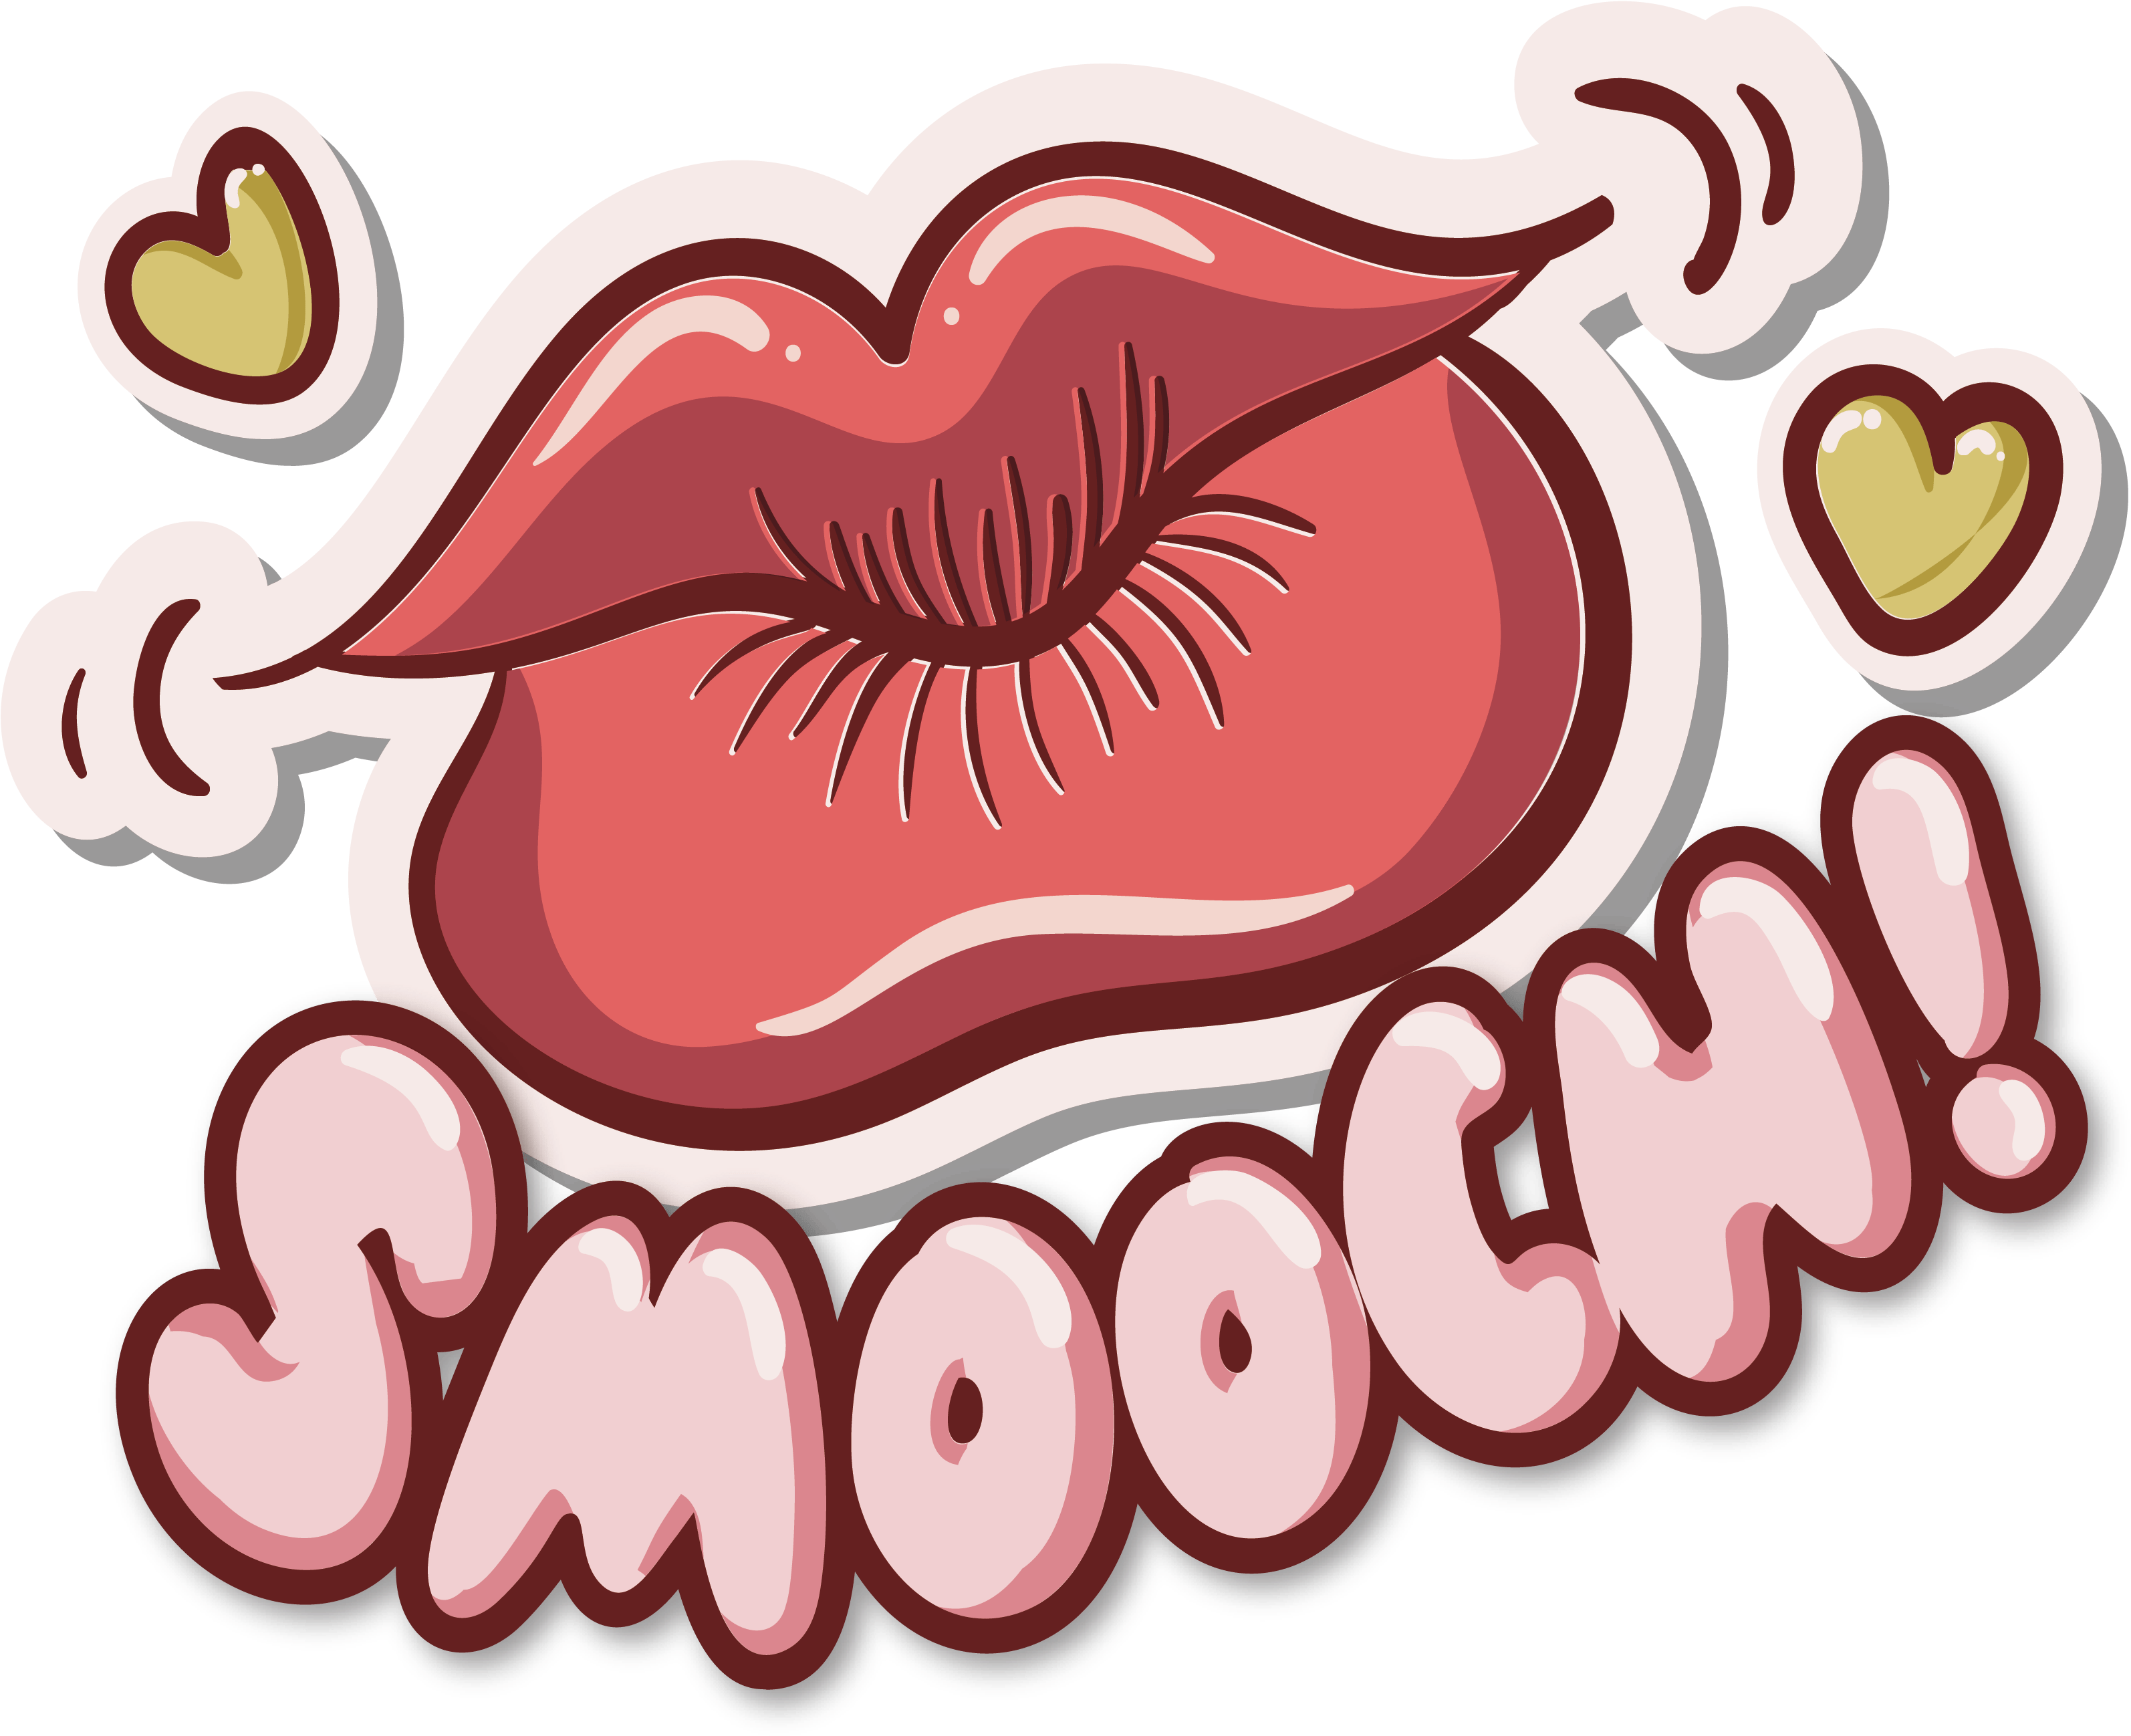 Big Red Lips Clipart Great Free Silhouette Coloring.